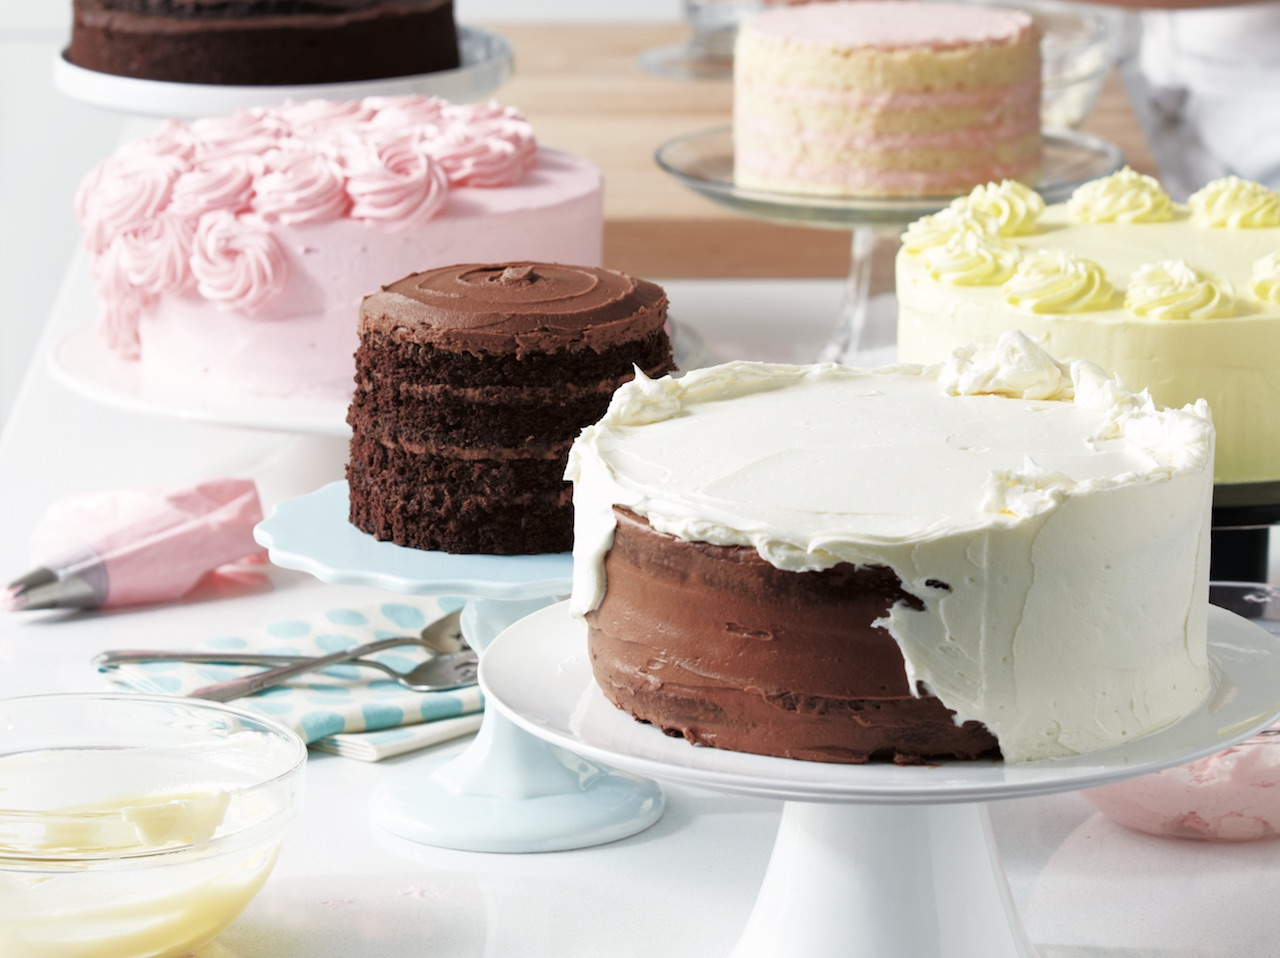 Baking Cakes 7 Rules For Baking The Perfect Cake And How To Fix Any Mistakes